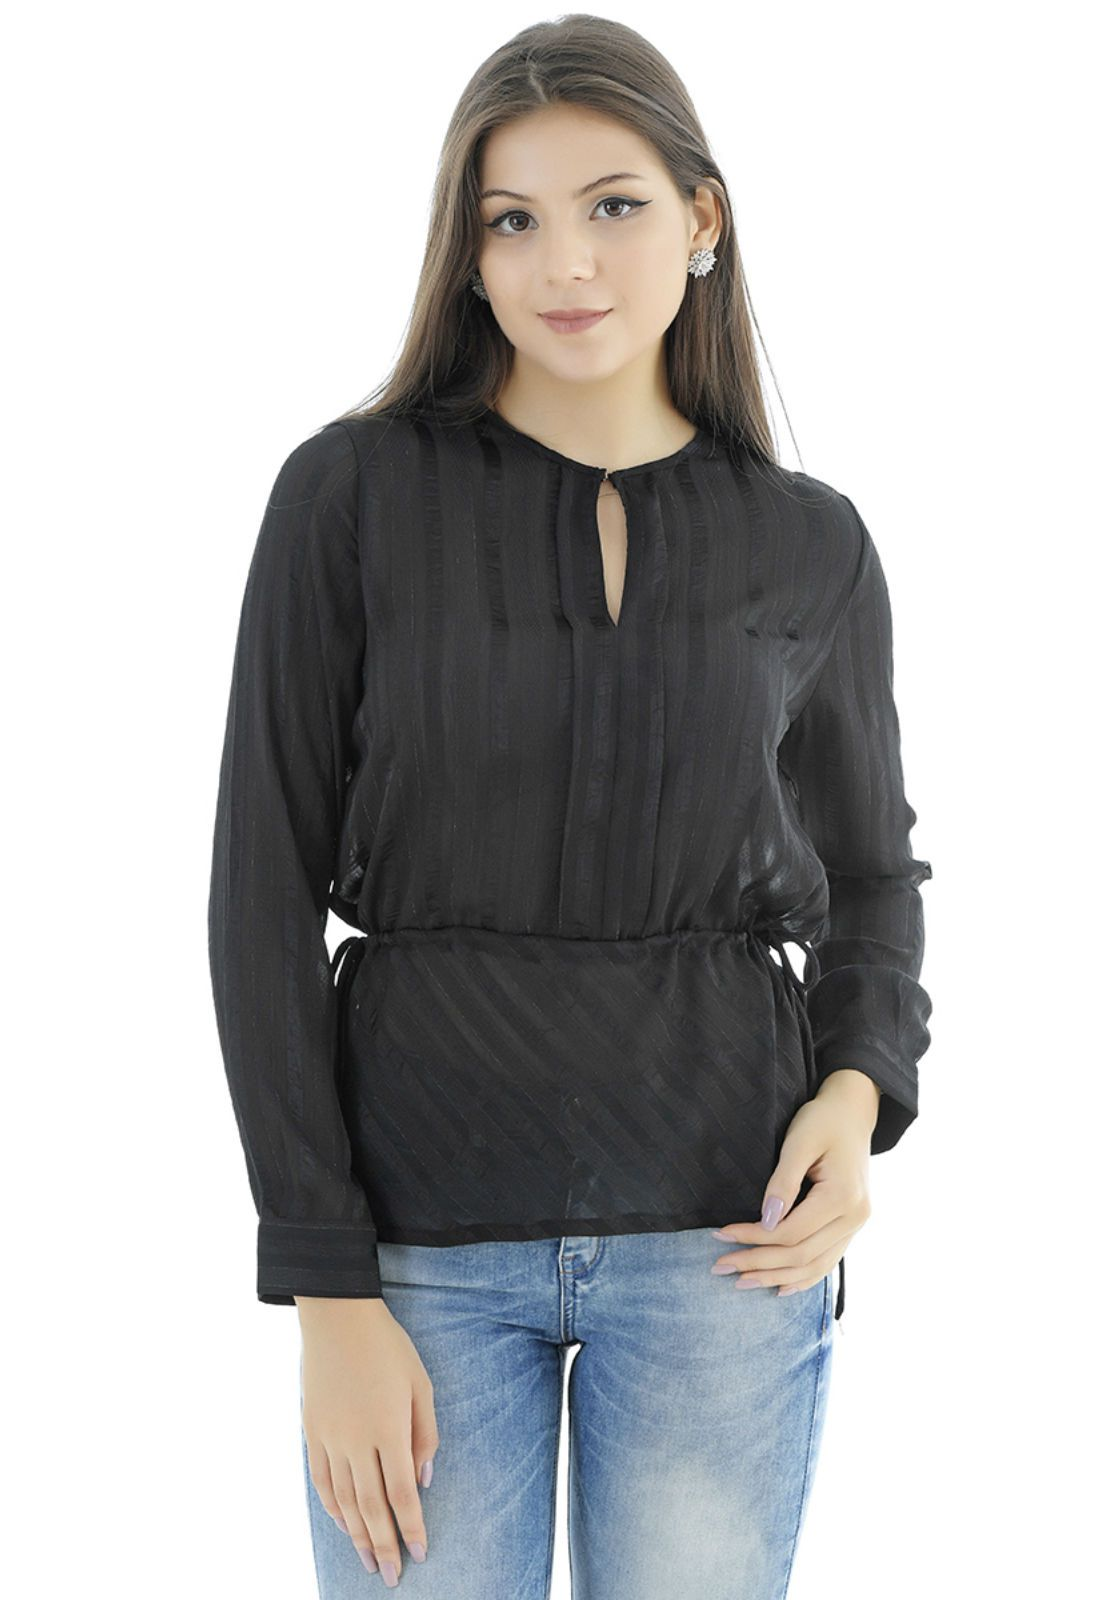 Blusa Lurex Unique Chic